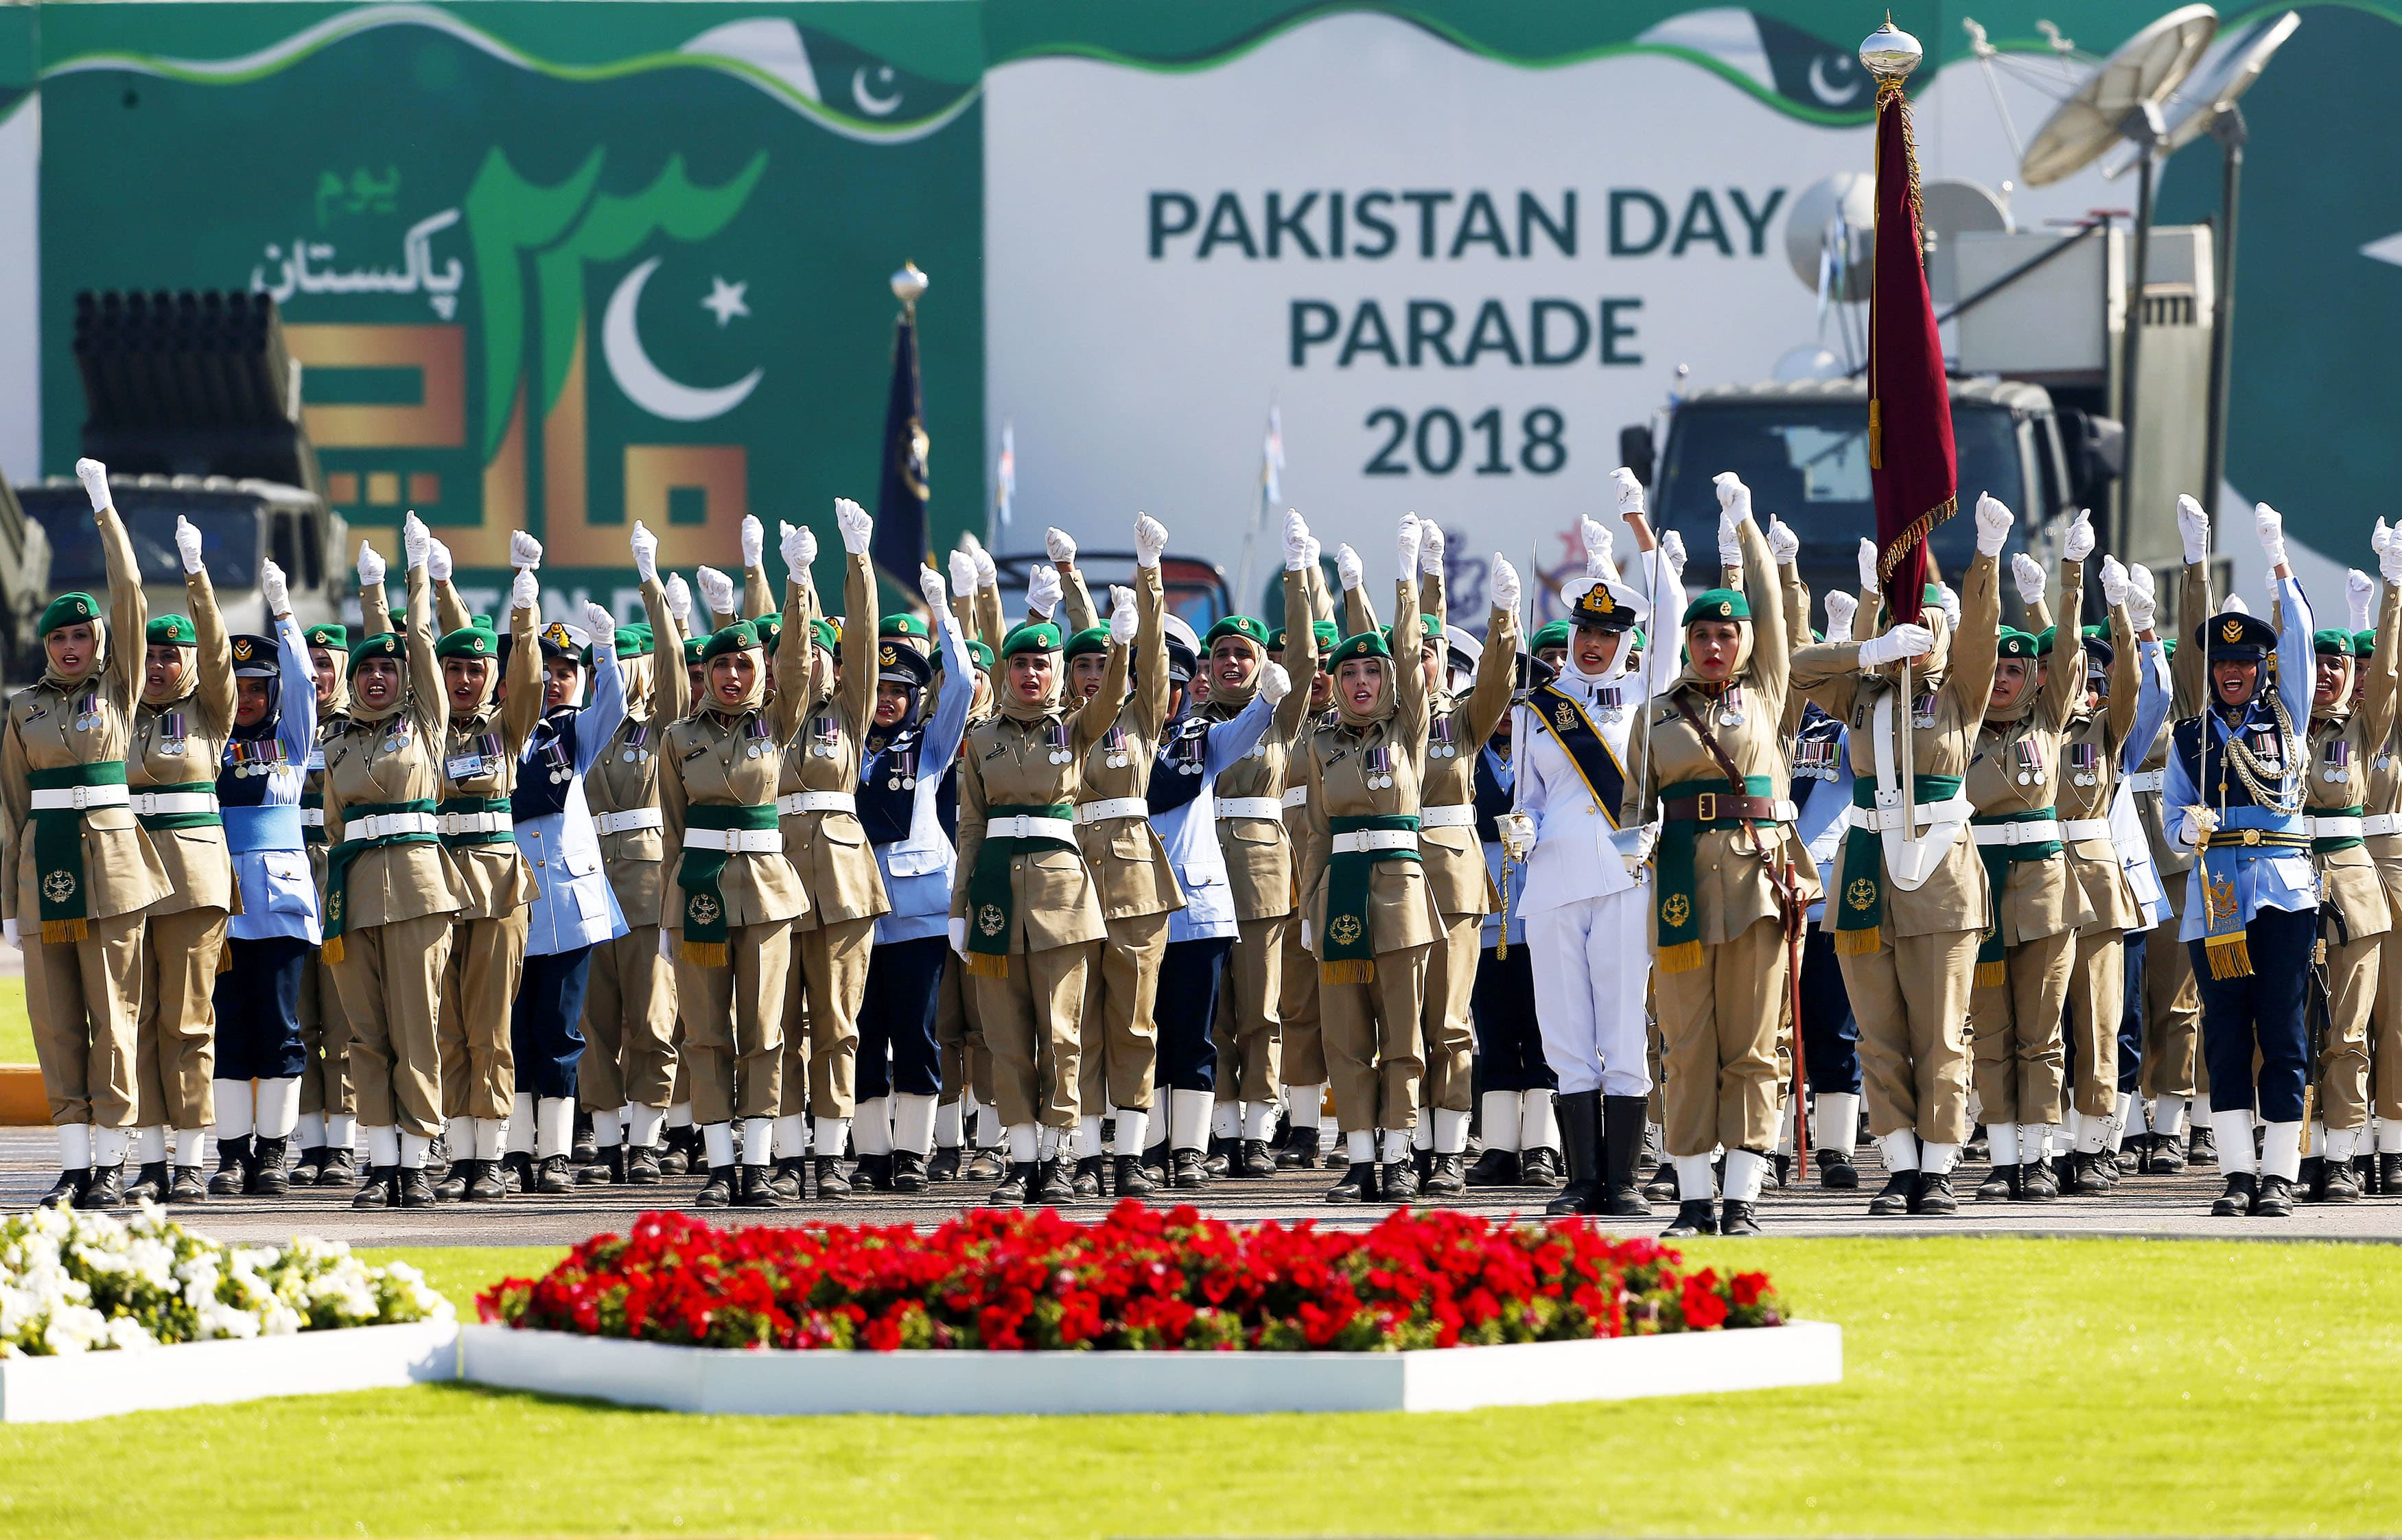 Female soldiers of the Pakistan Army chant 'Long Live Pakistan' during a military parade in Islamabad, Pakistan, Friday, March 23, 2018. Pakistanis celebrated their National Day with a military parade in the capital, Islamabad, showcasing short- and long-range missiles, tanks, jets, drones and other hardware. Troops, including female soldiers, marched past a stand with political and military leaders. (AP Photo/Anjum Naveed) — Copyright 2018 The Associated Press. All rights reserved.